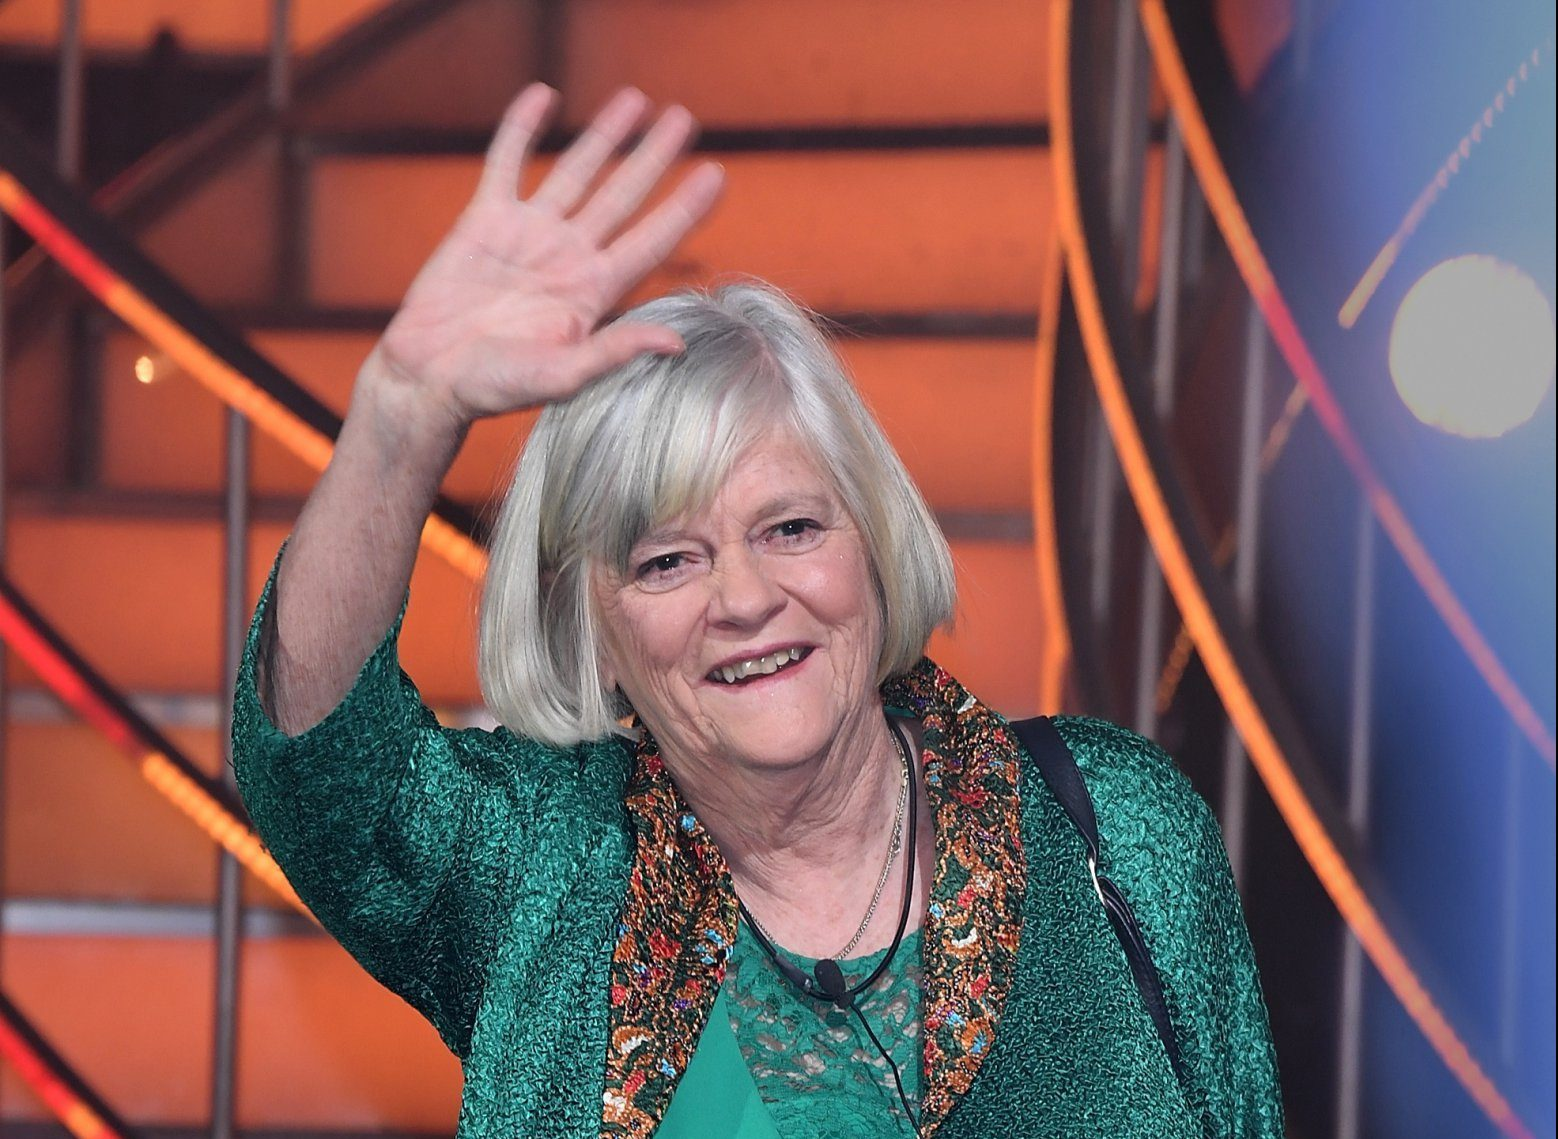 Celebrity Big Brother's Shane Jenek would have been 'disappointed' if Ann Widdecombe won